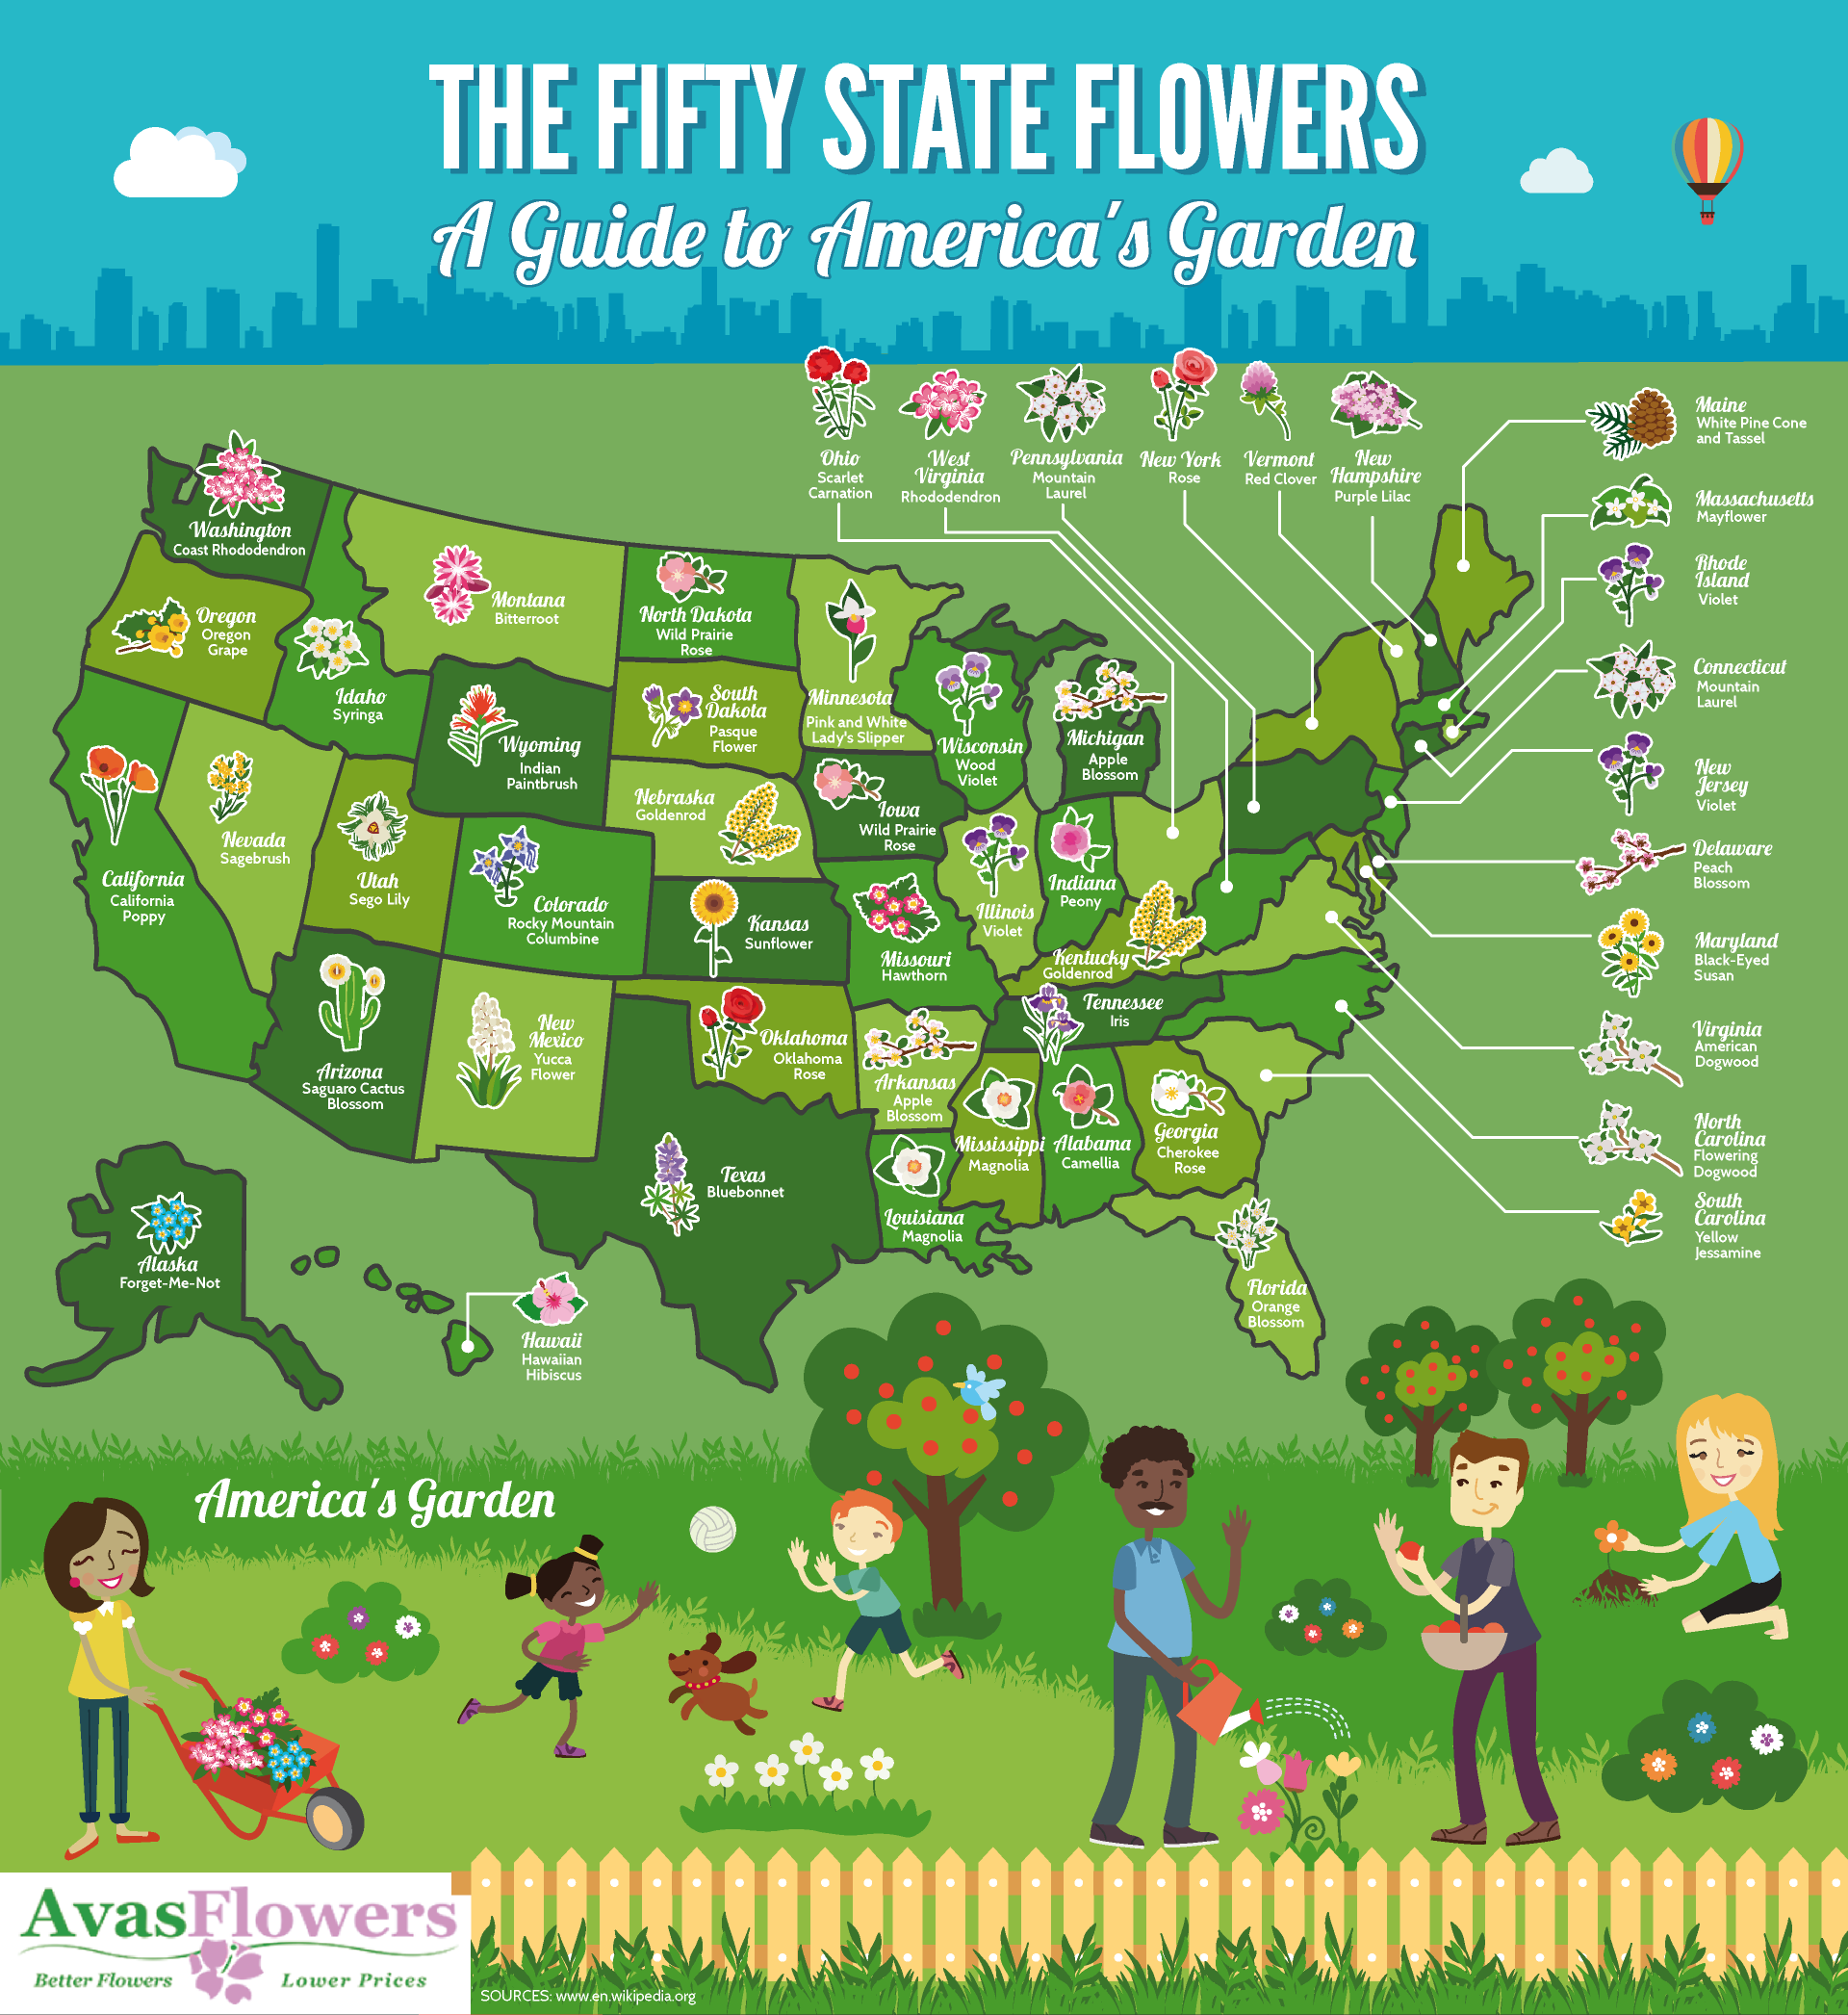 The Fifty State Flowers - A Guide to America's Garden